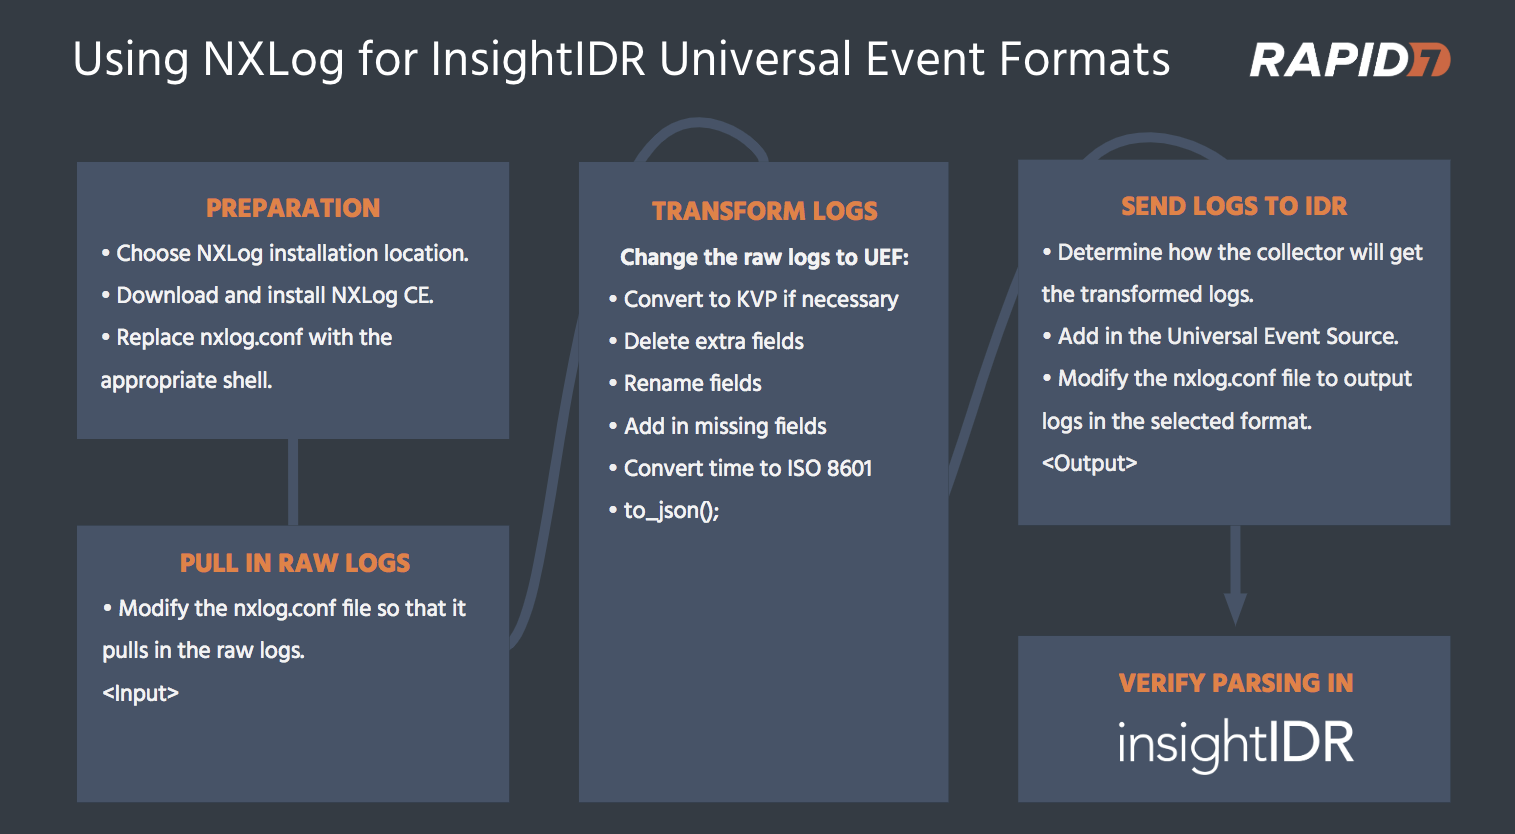 Transform Logs to Universal Event Format